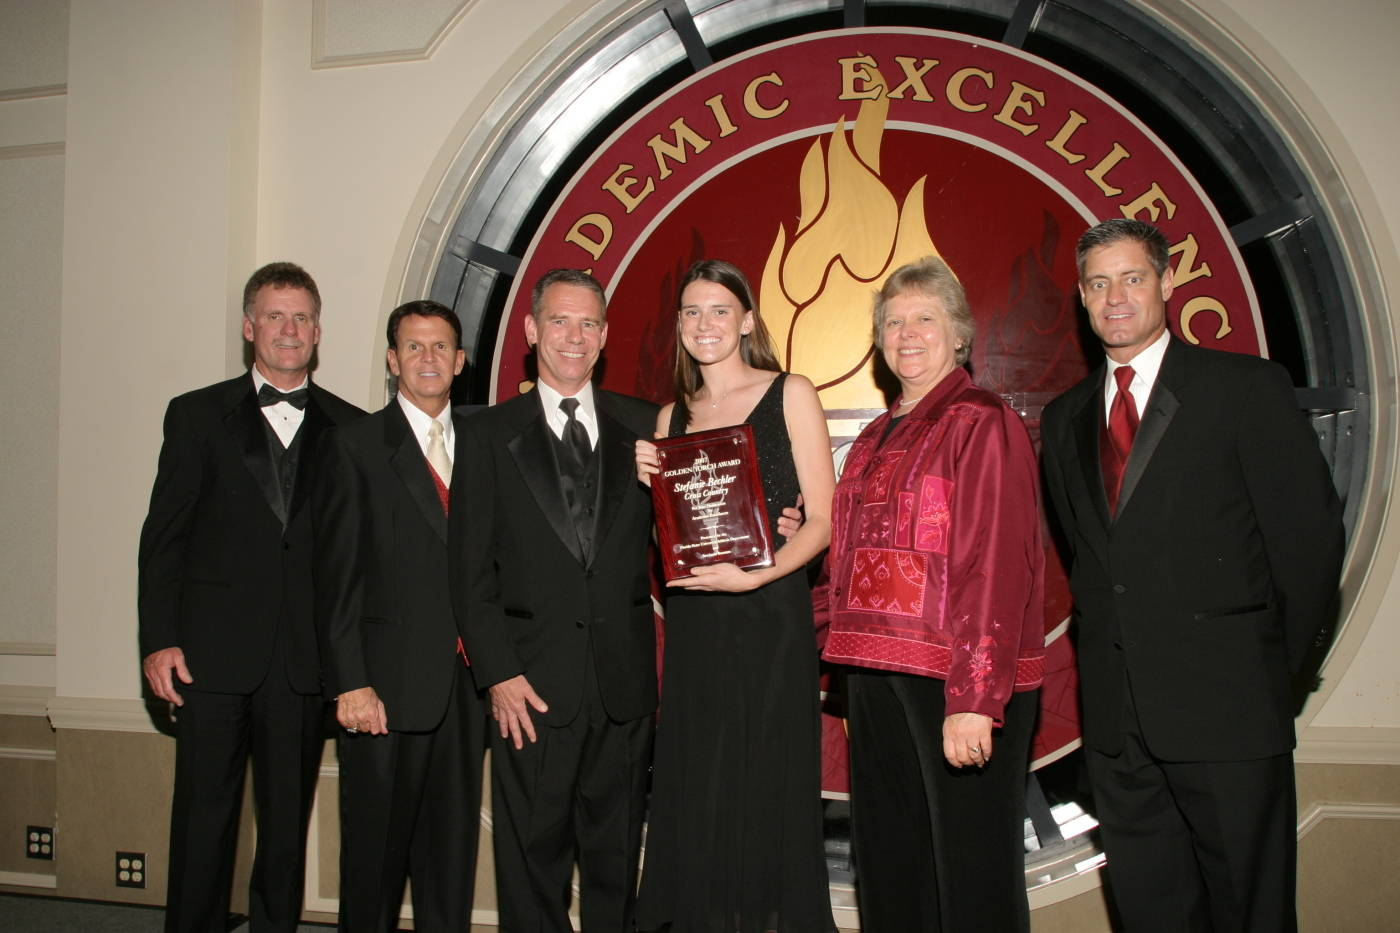 Women's Cross Country's 2006-07 Golden Torch Award winner, Stefanie Bechler.